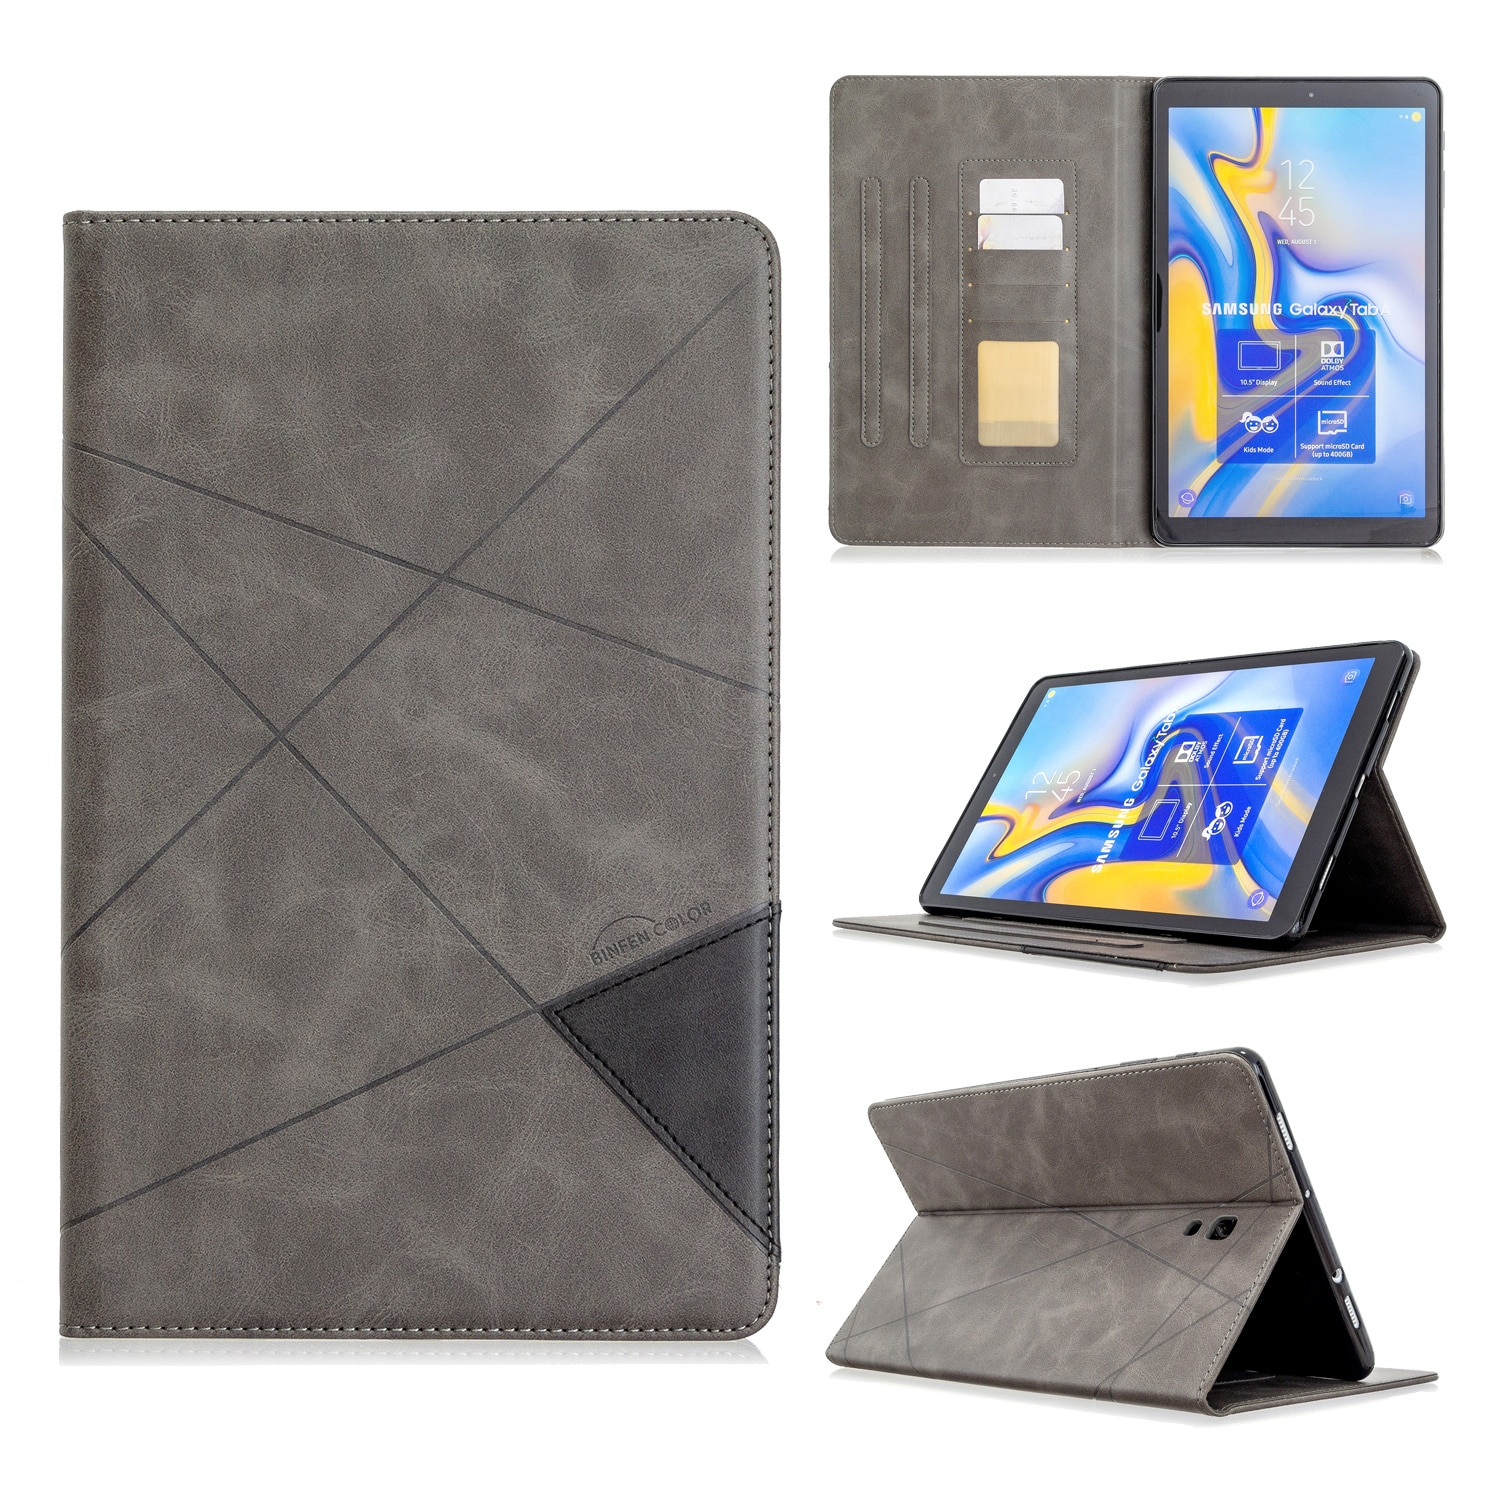 Galaxy Tab to sm-t590 t595 Tablet PC luxury leather case, 10.5-inch shockproof bracket, 10.5-inch enlarge